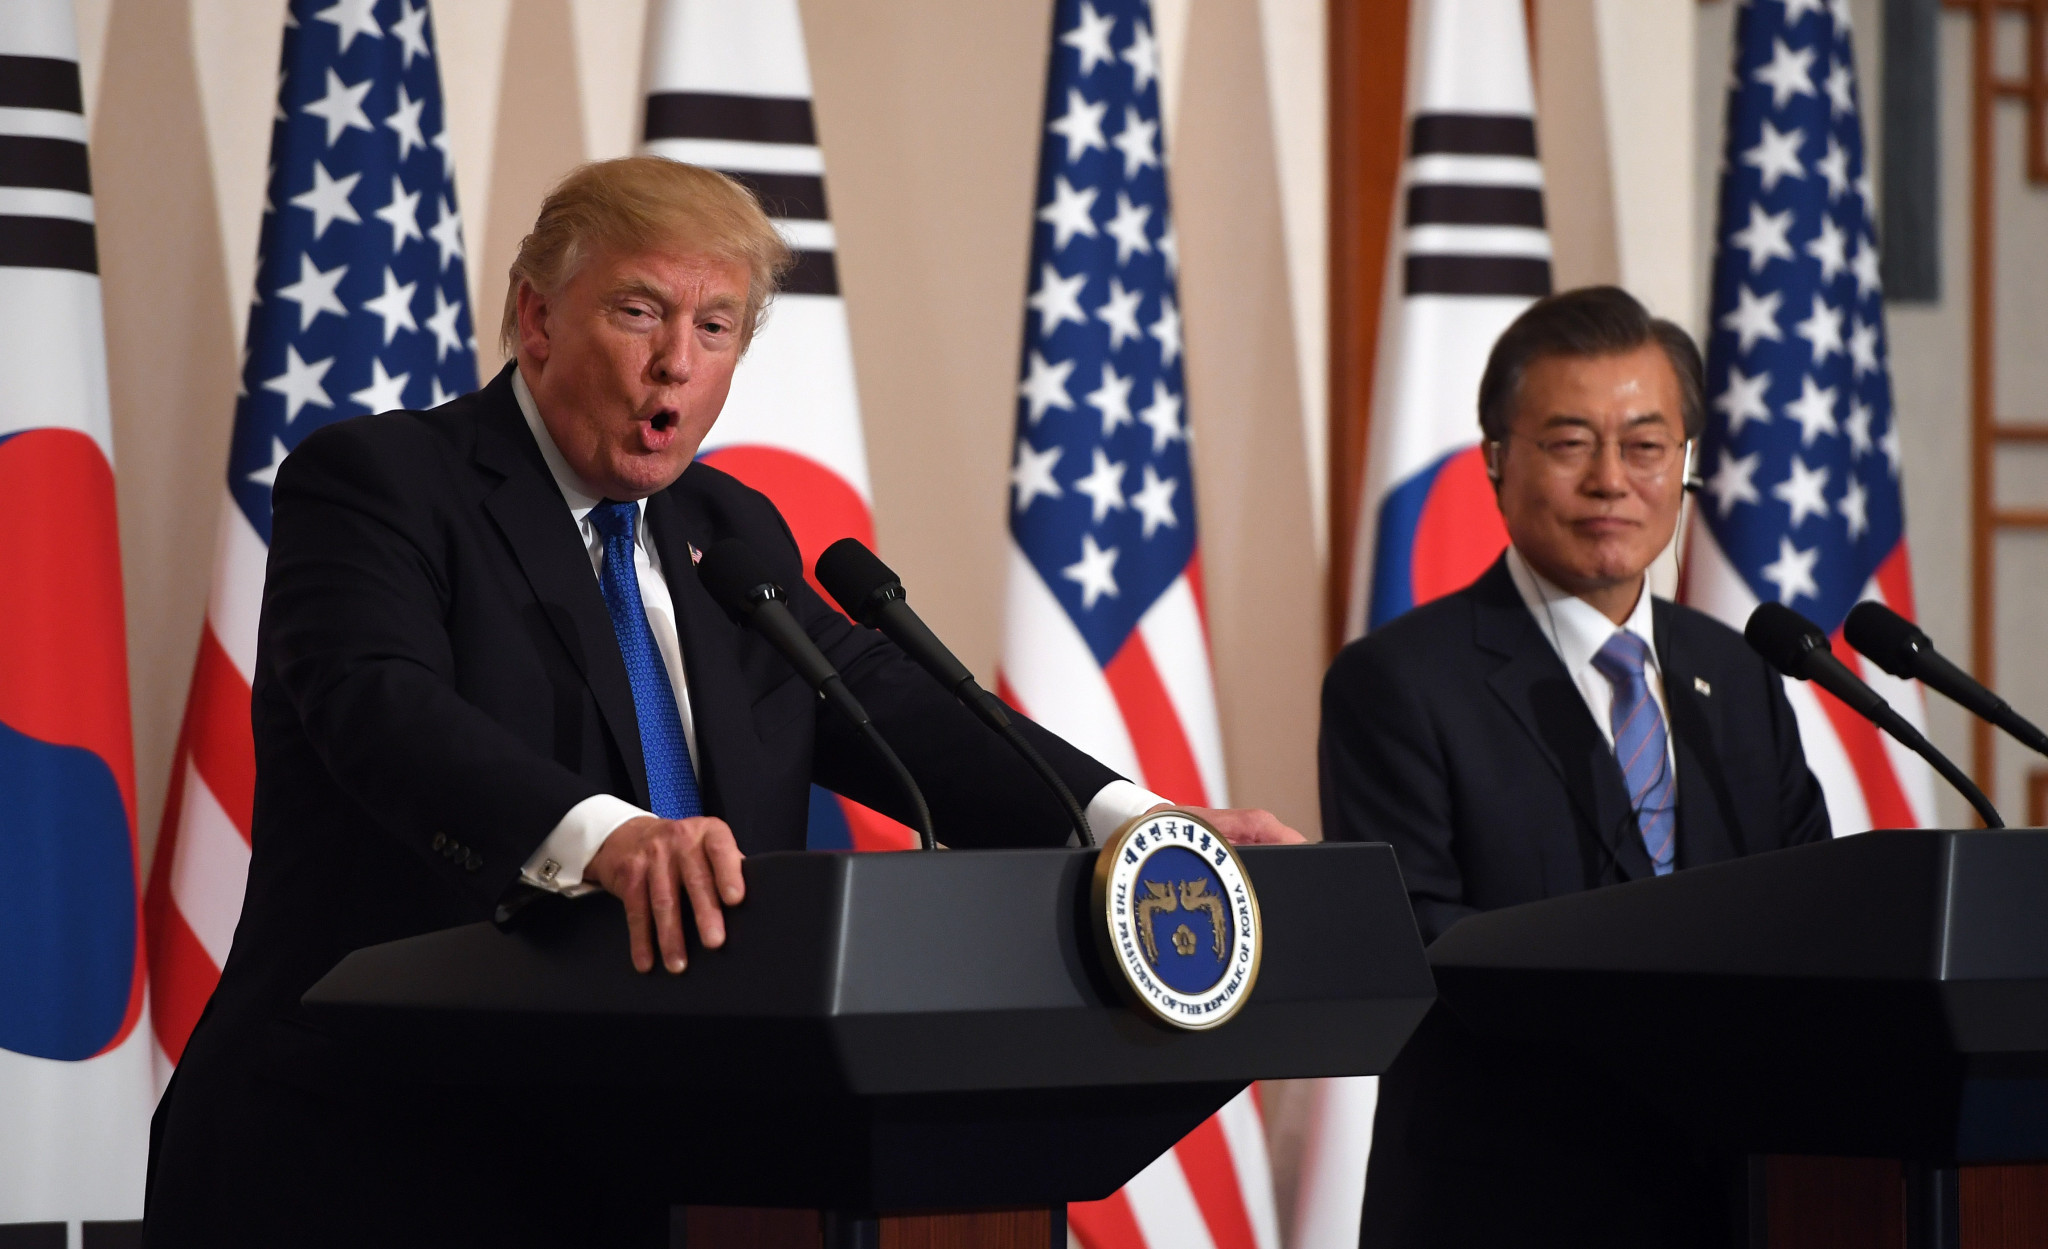 United States President Donald Trump has claimed that South Korean counterpart Moon Jae-in has credited him for the success of the Pyeongchang 2018 Winter Olympics ©Getty Images